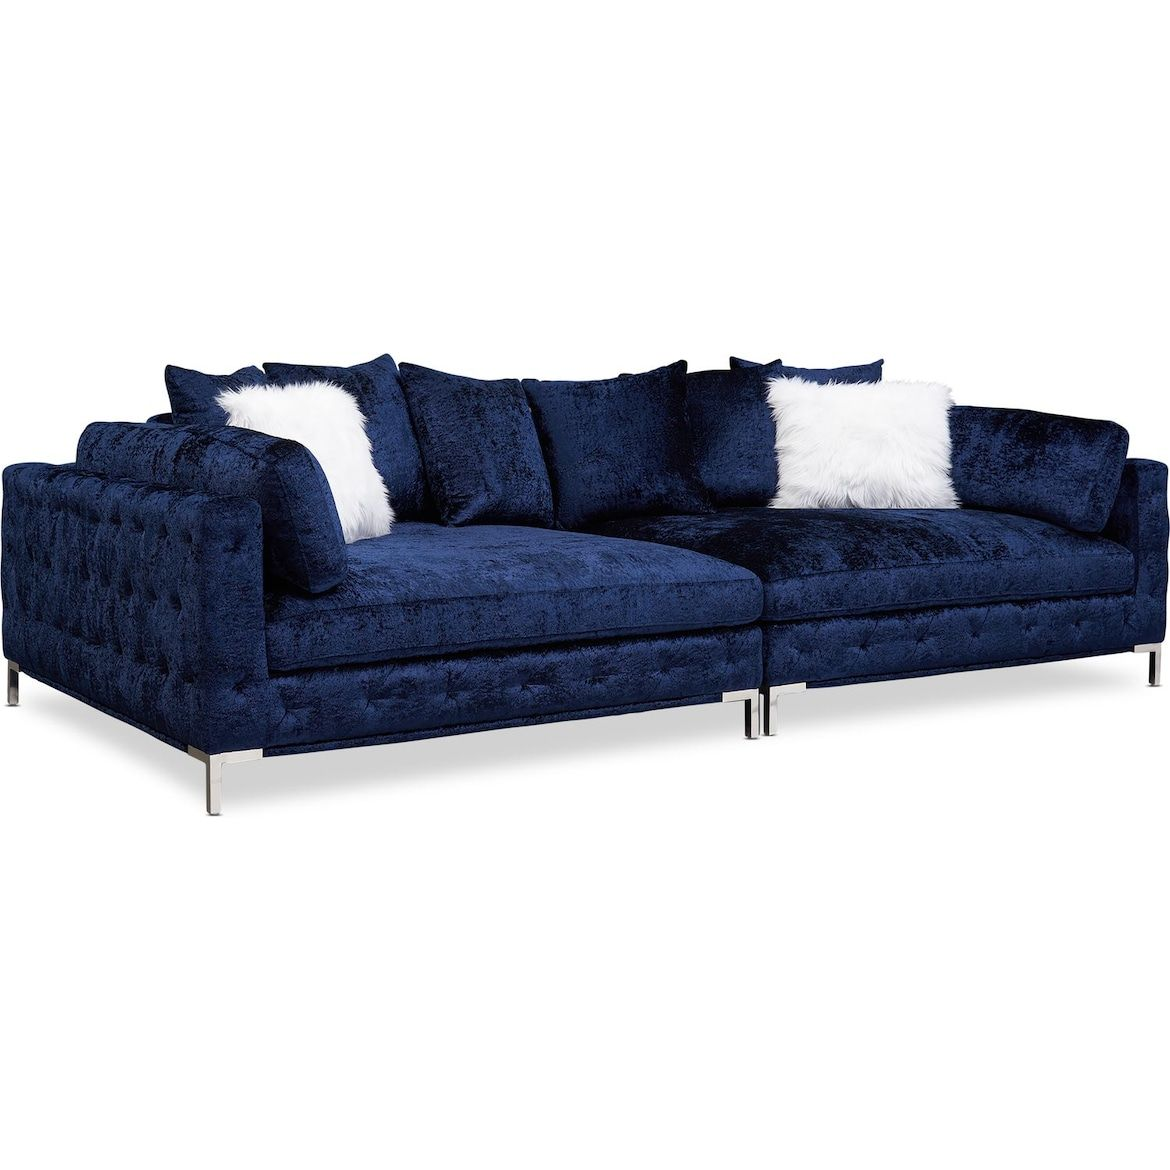 Milan 2 Piece Sofa Value City Furniture And Mattresses In 2020 Sofa And Loveseat Set Value City Furniture Furniture